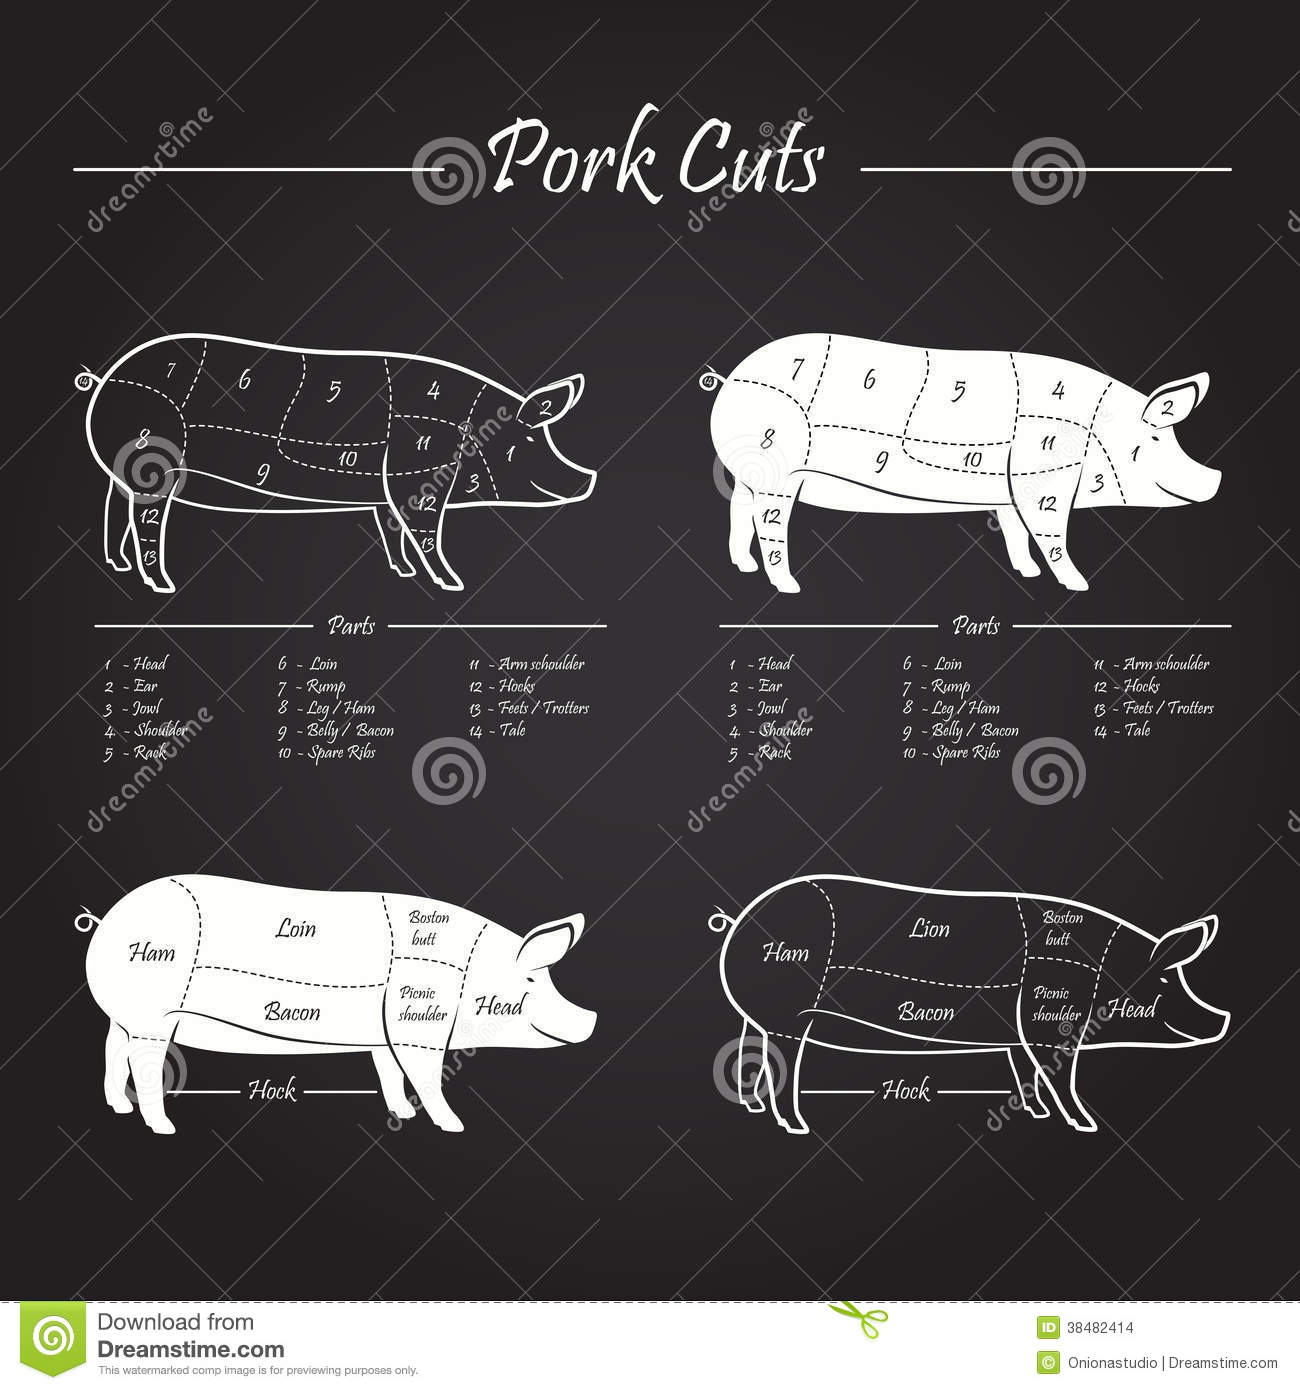 beef cuts diagram of cow 1997 buick lesabre fuse pork meat scheme stock images - image: 38482414